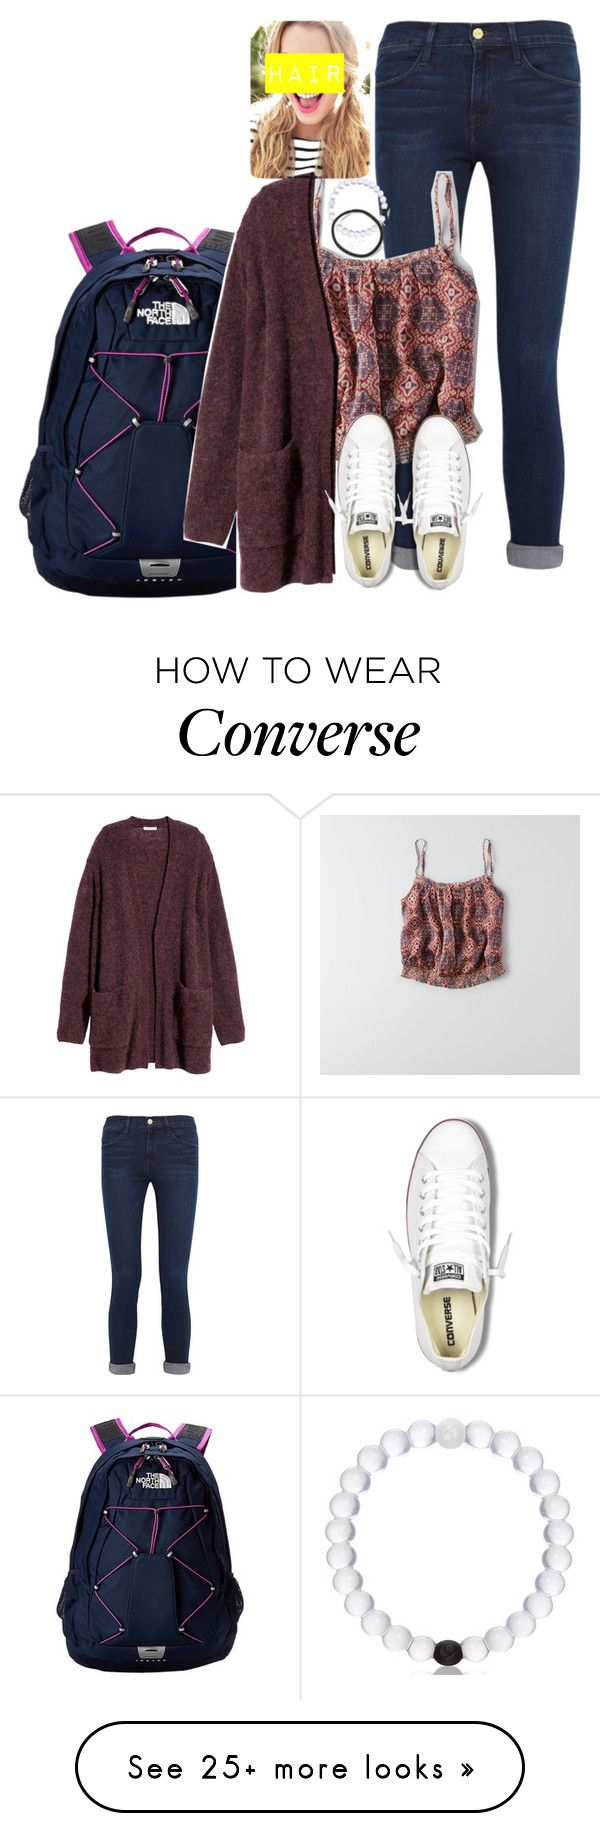 """""""Outfit idea #2"""" by katieegarvey on Polyvore featuring Frame Denim, American Eagle Outfitters, The North Face, H&M, Converse and schooooloutfitz"""